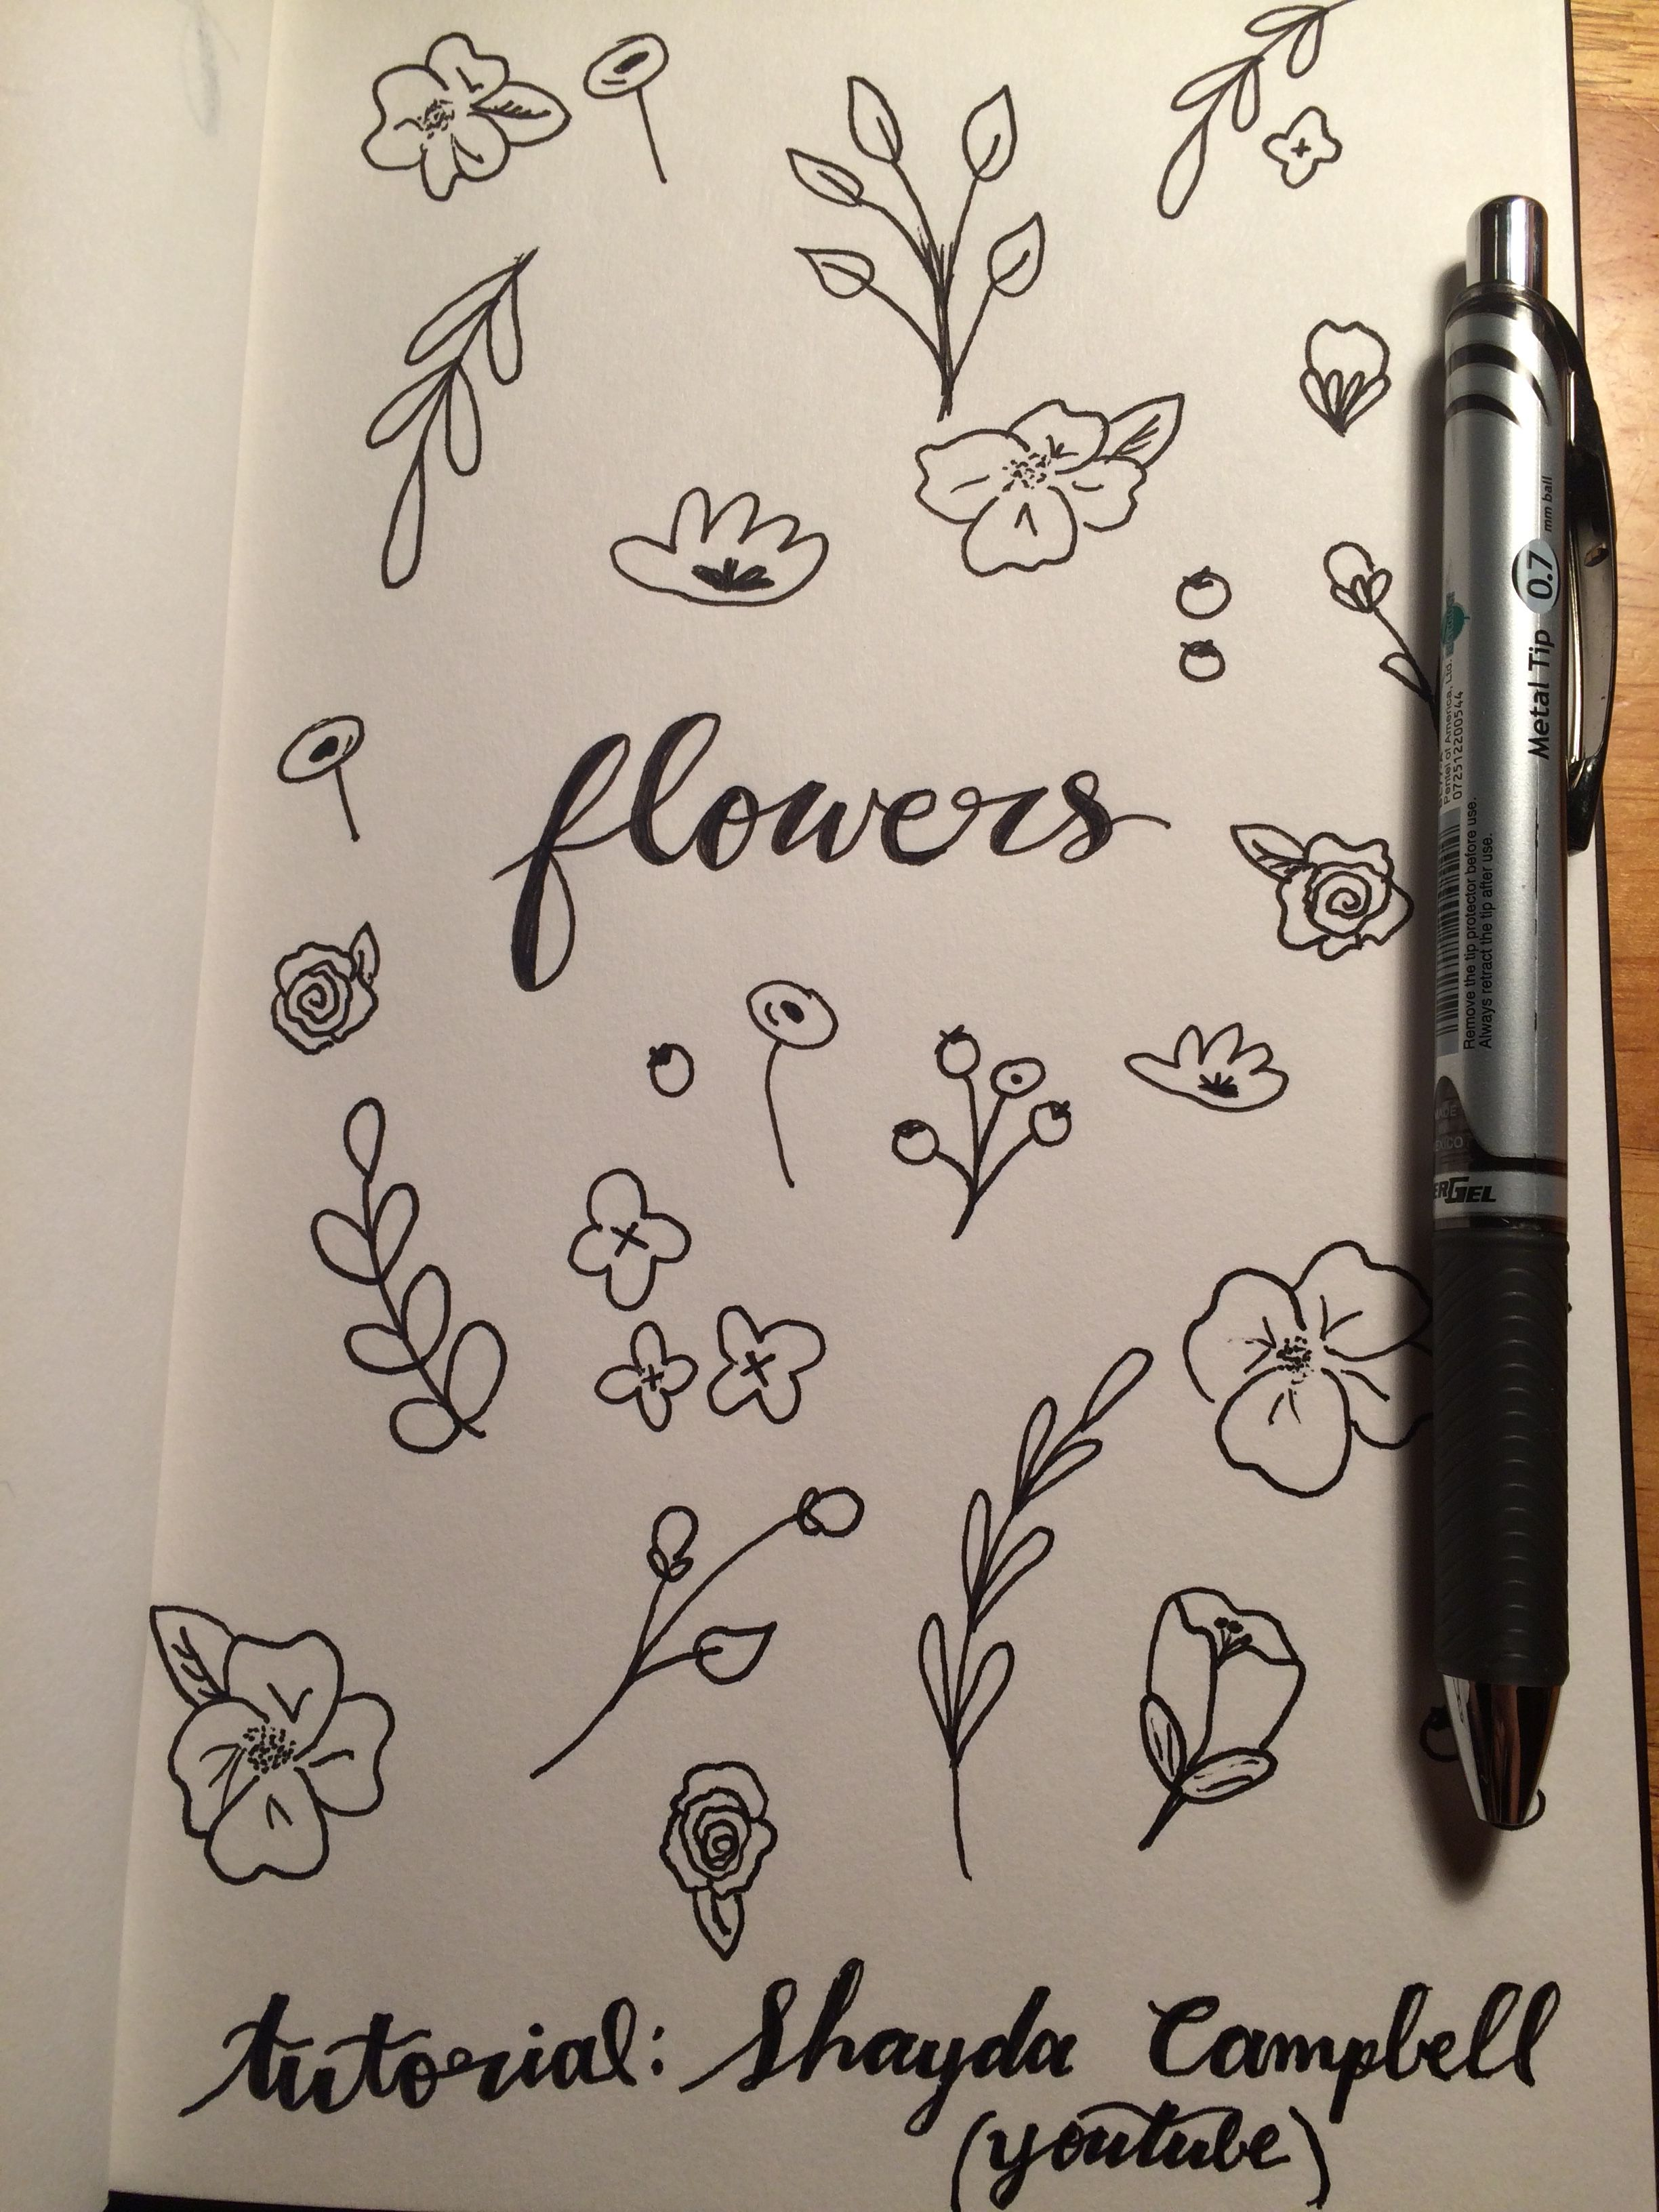 Practicing doodling some flowers for my bujo. Tutorial used from Shayda Campbell on Youtube